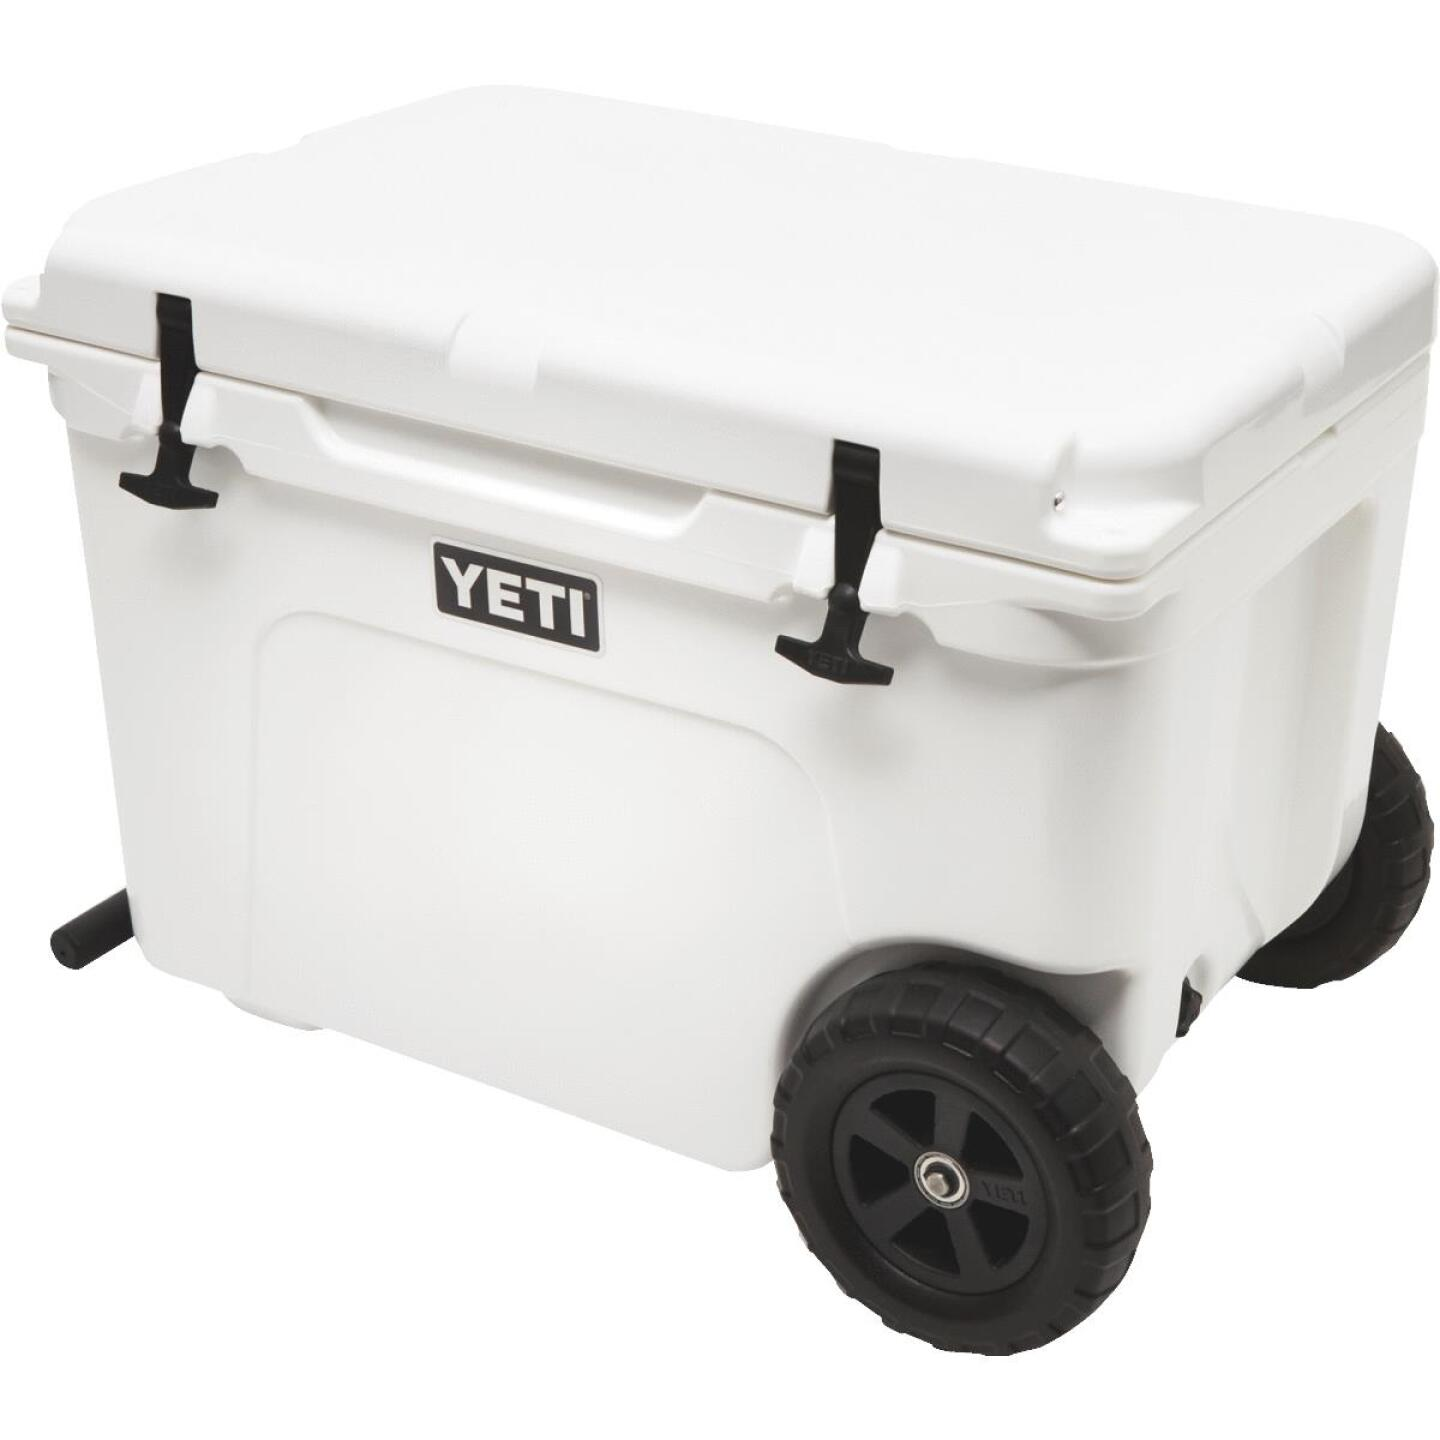 Yeti Tundra Haul 45-Can 2-Wheeled Cooler, White Image 2